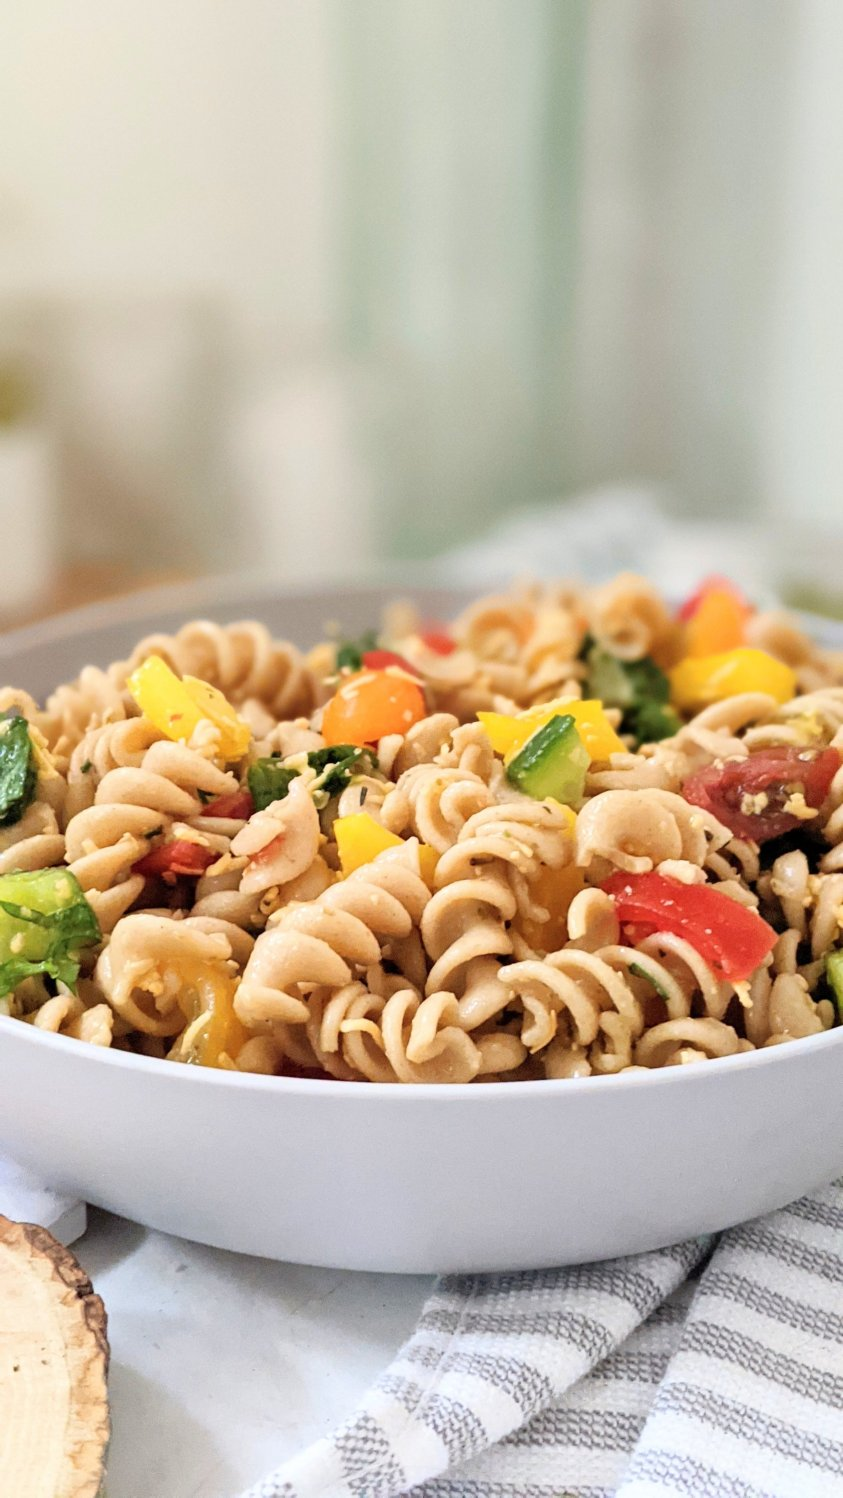 no meat pasta salad for summer vegetarian sides for bbq pasta side dishes for entertaining healthy gluten free vegetarian pasta salad with tomatoes cucumbers peppers and homemade pasta salad dressing